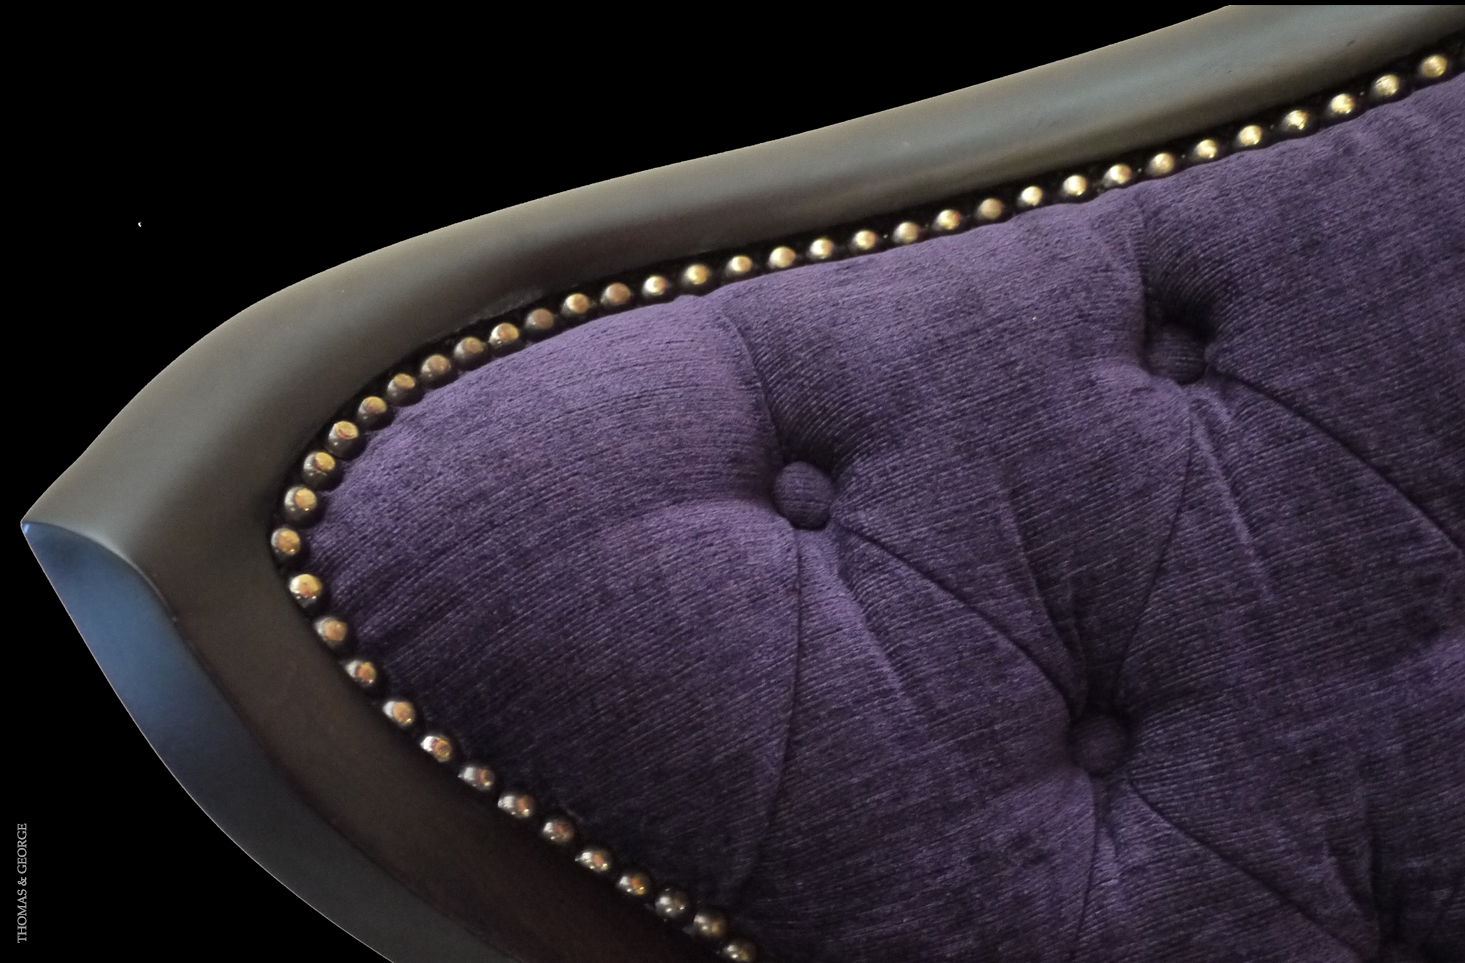 Passion Flower Petal Chair - Luxury-furniture-details - THOMAS & GEORGE ARTISAN FURNITURE - Thomas & George Fine Furniture Inc.